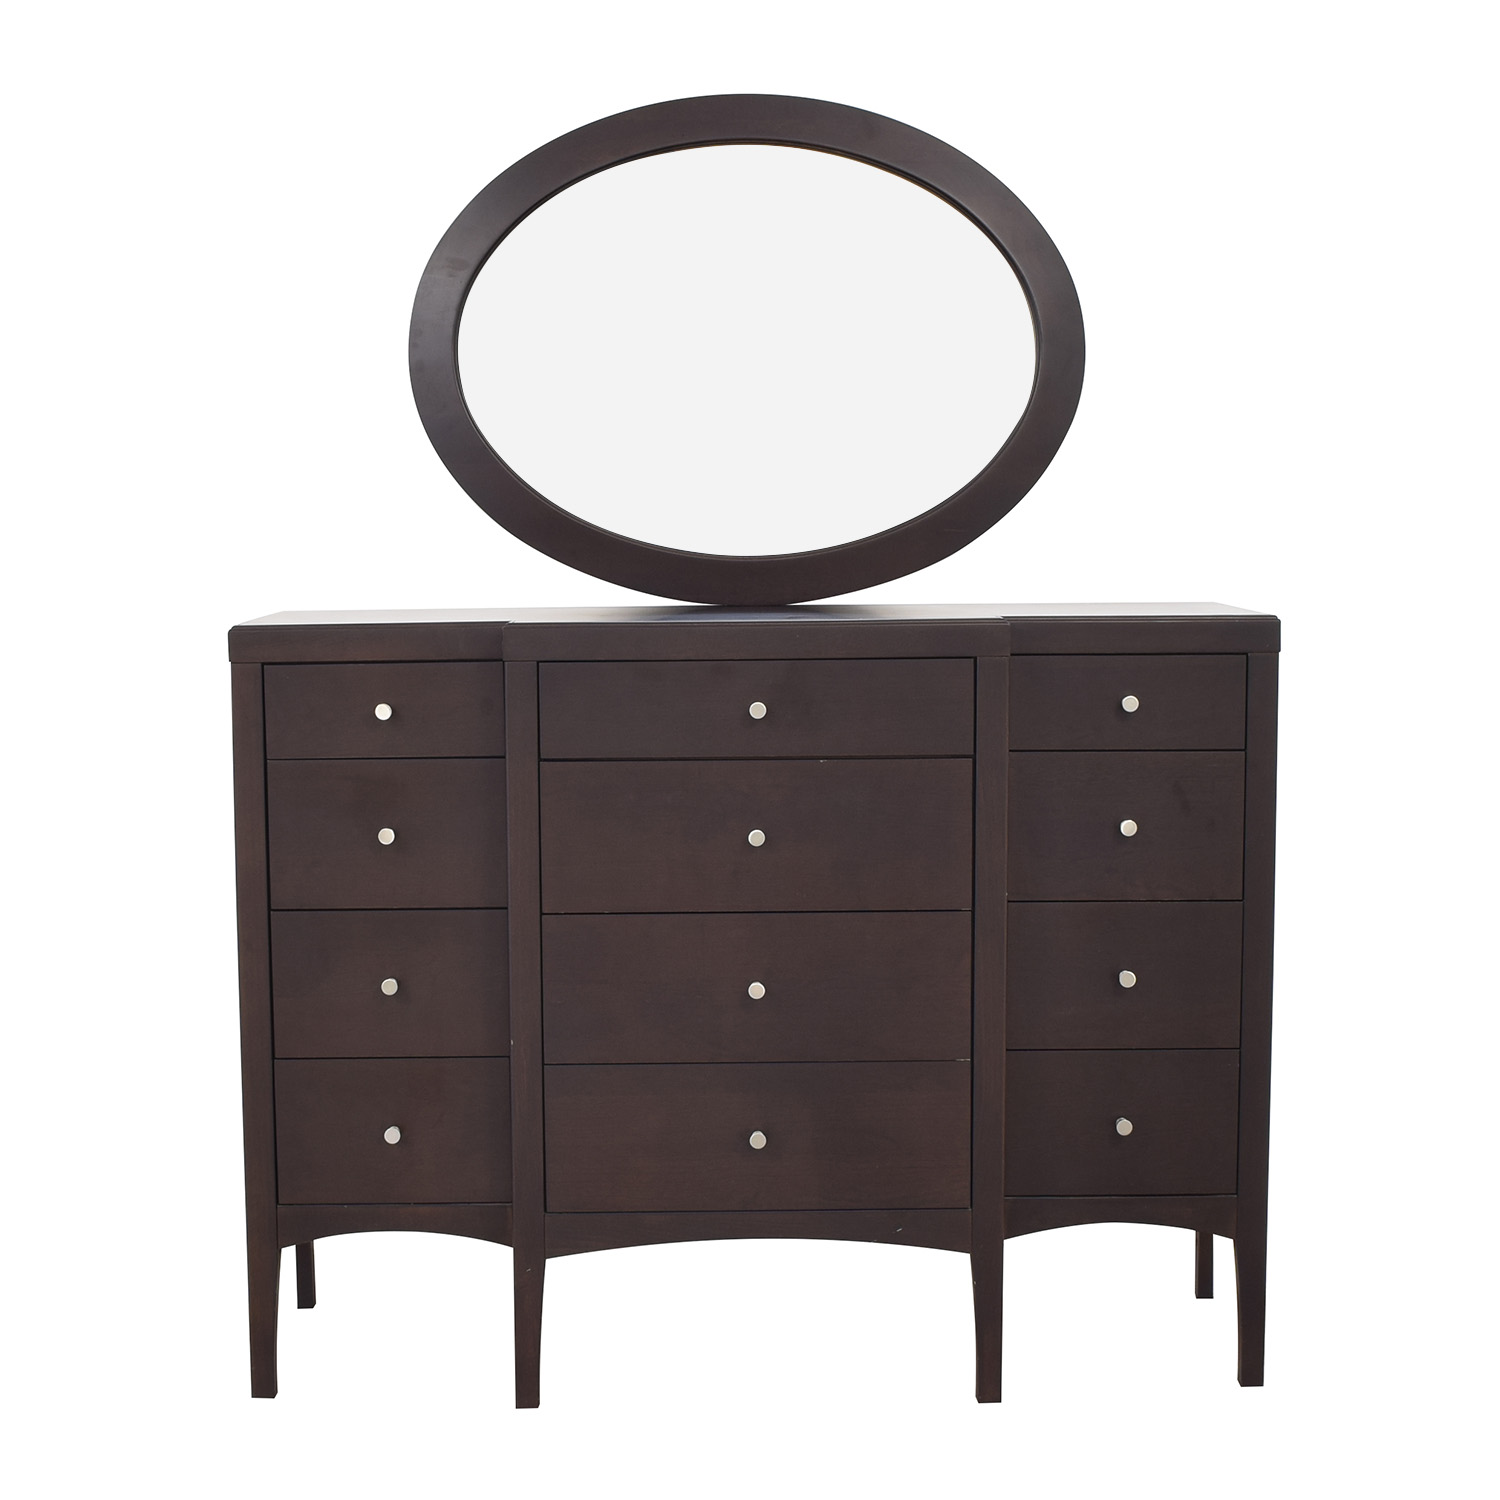 Macy's Macy's Chest of Drawers and Mirror discount